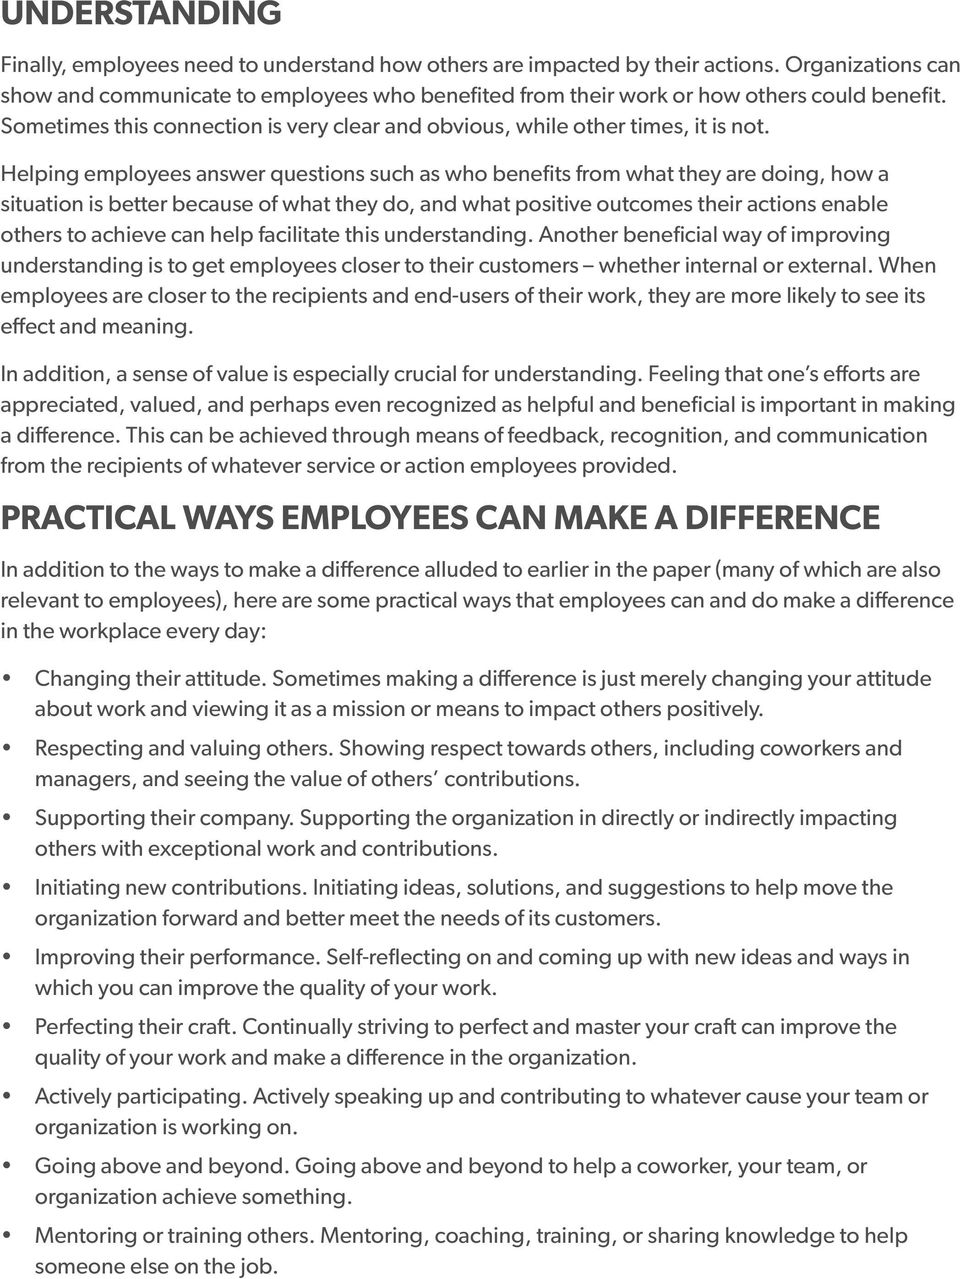 Helping employees answer questions such as who benefits from what they are doing, how a situation is better because of what they do, and what positive outcomes their actions enable others to achieve